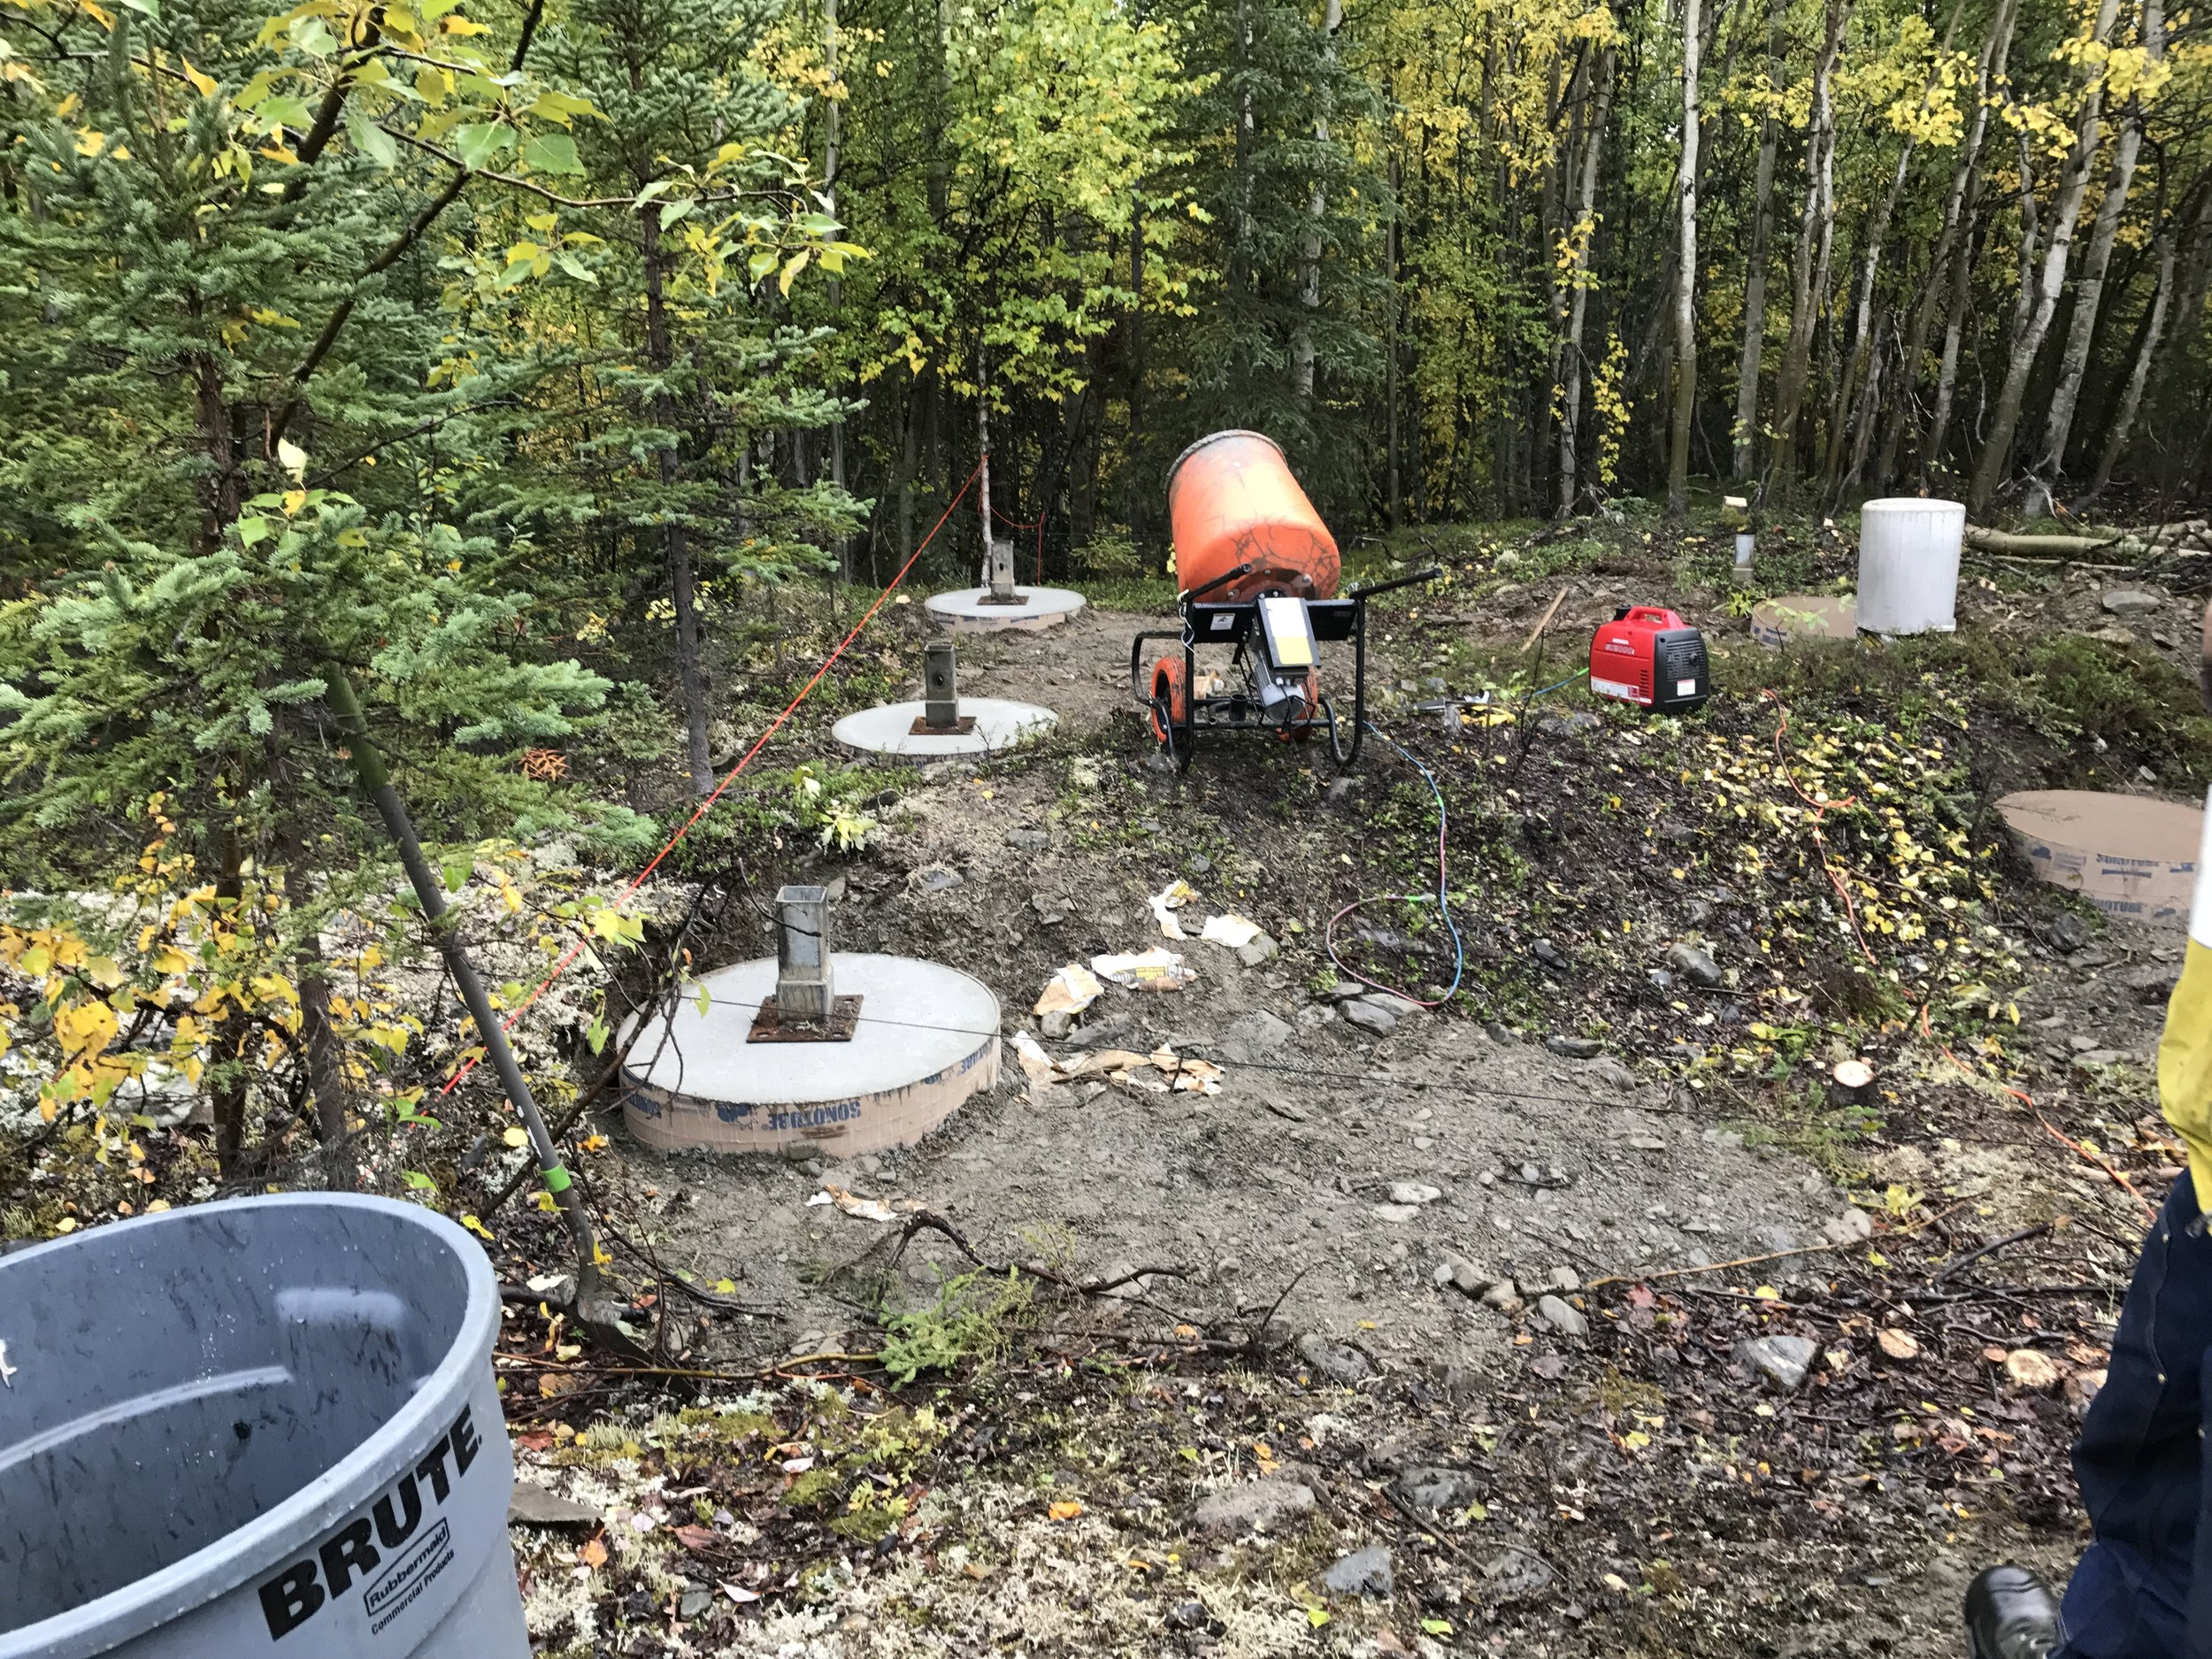 Water was transferred from the cold rushing Tiekel River less than a mile away, to blue jugs then garbage cans, to mix the 900lb.+ footings.